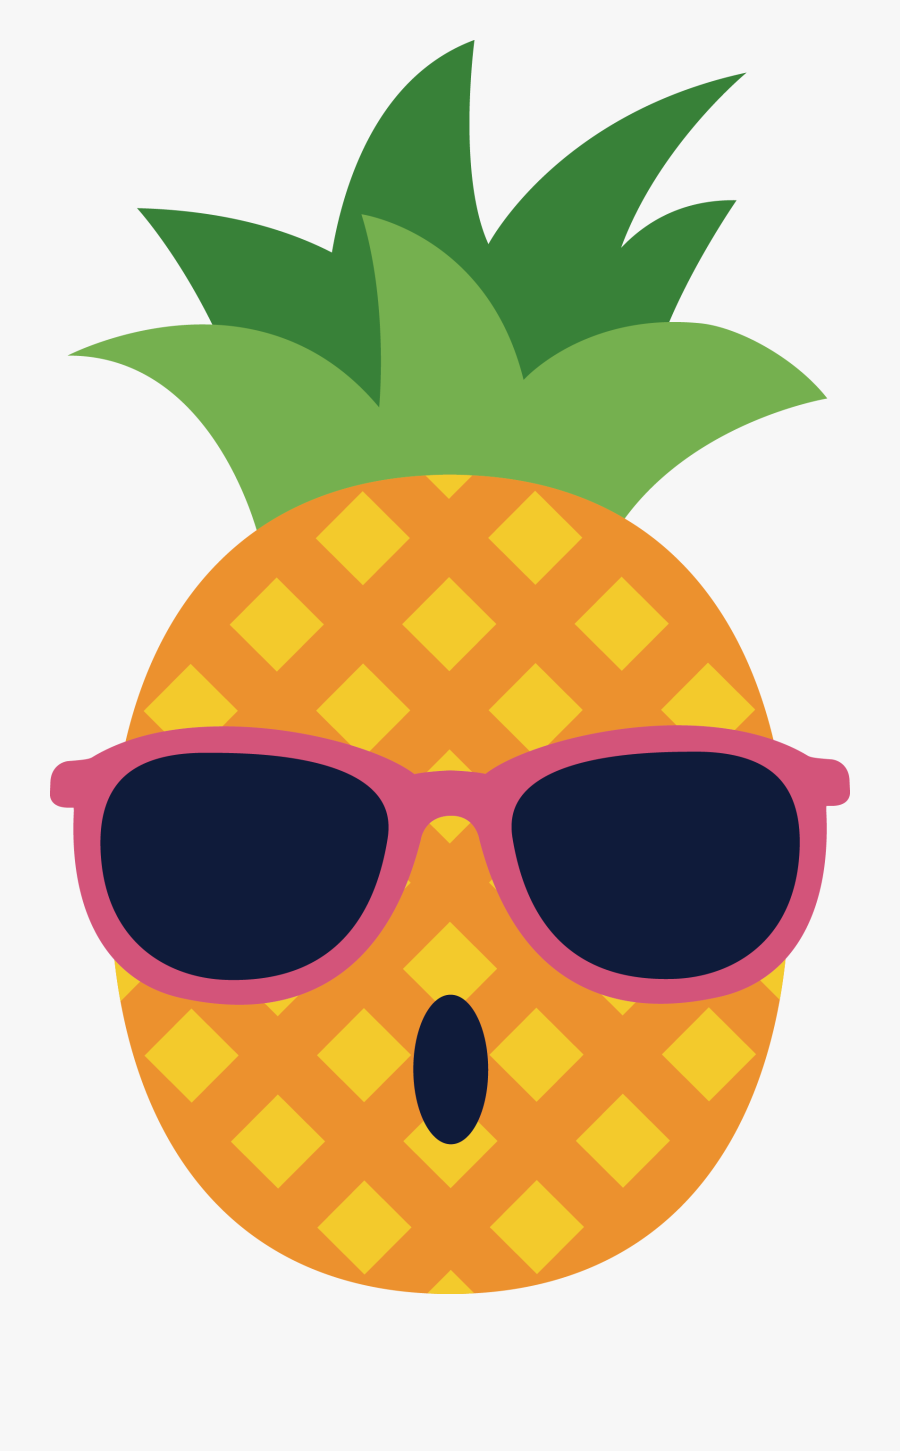 Pineapple Spectacles Glasses - Draw A Pineapple With Sunglasses, Transparent Clipart